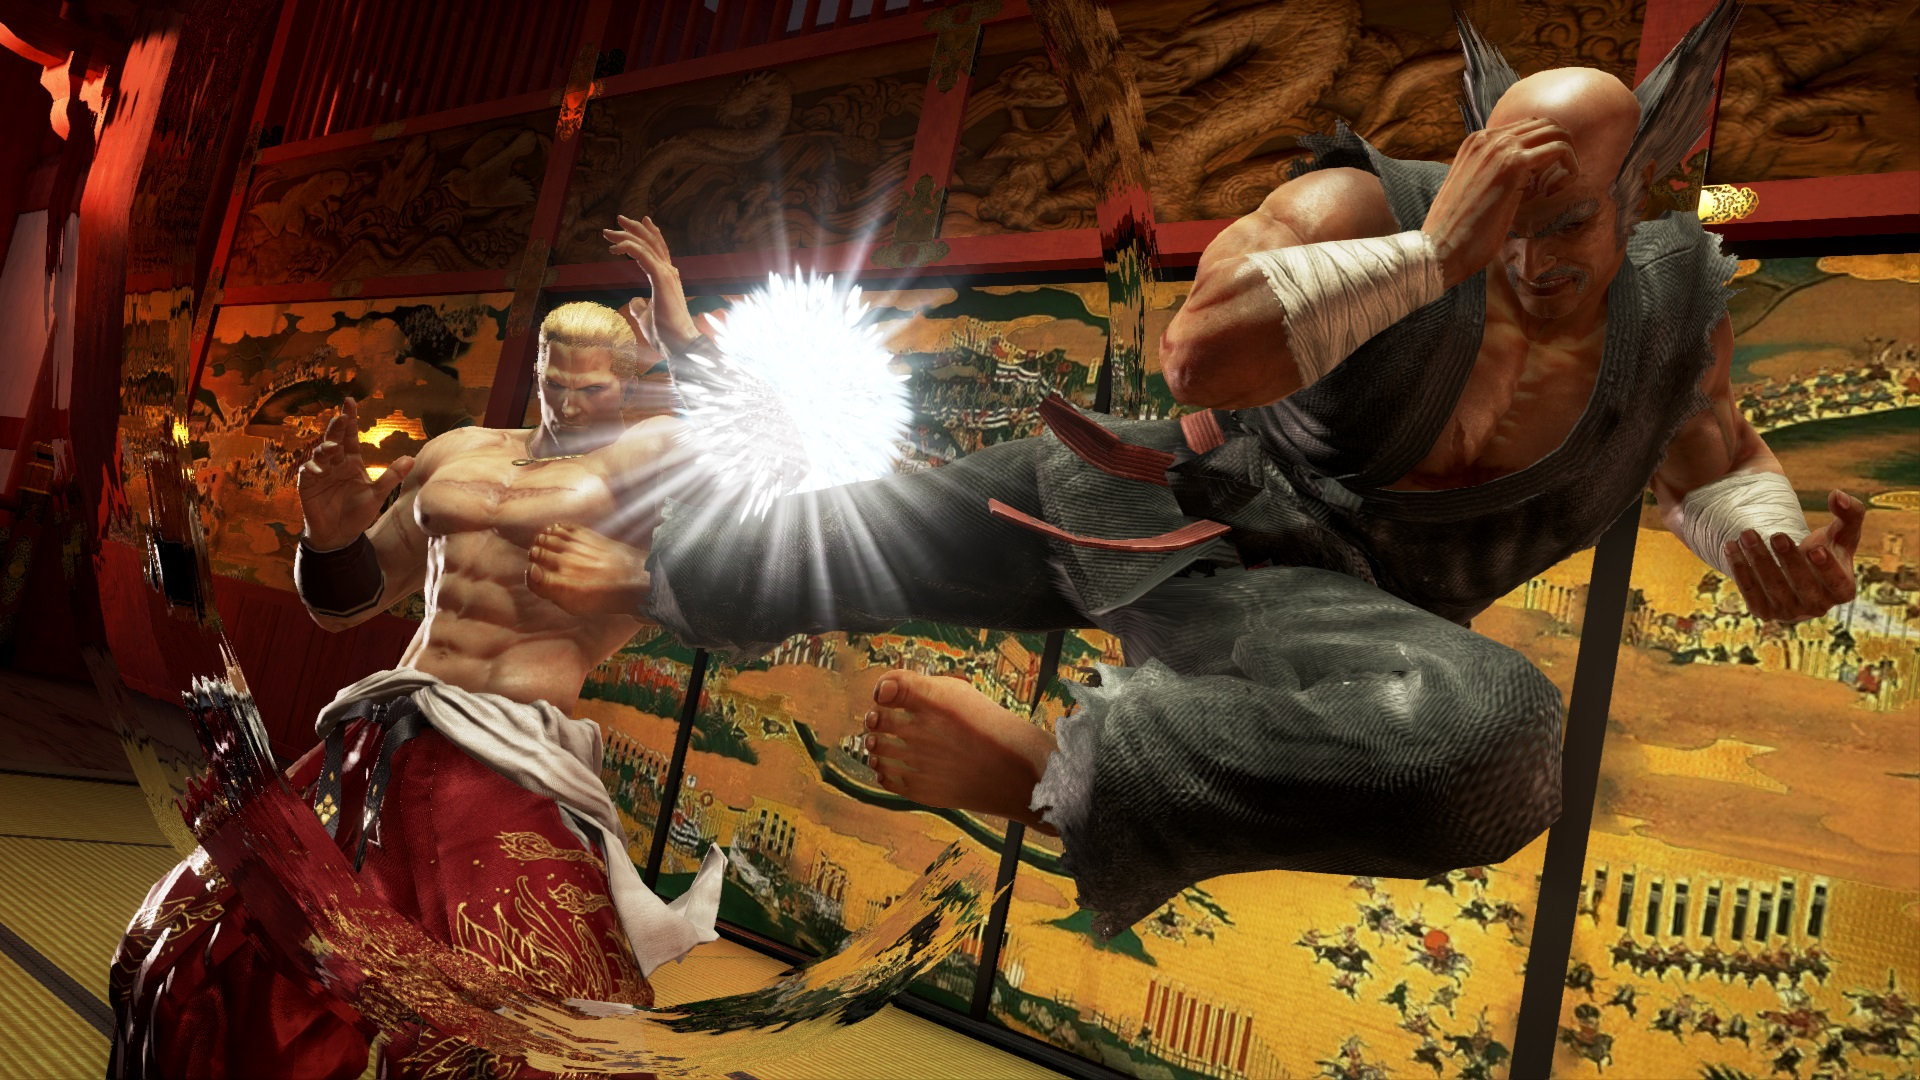 Tekken 7 Geese Howard Gameplay Videos From Twt Finals News Avoiding The Puddle